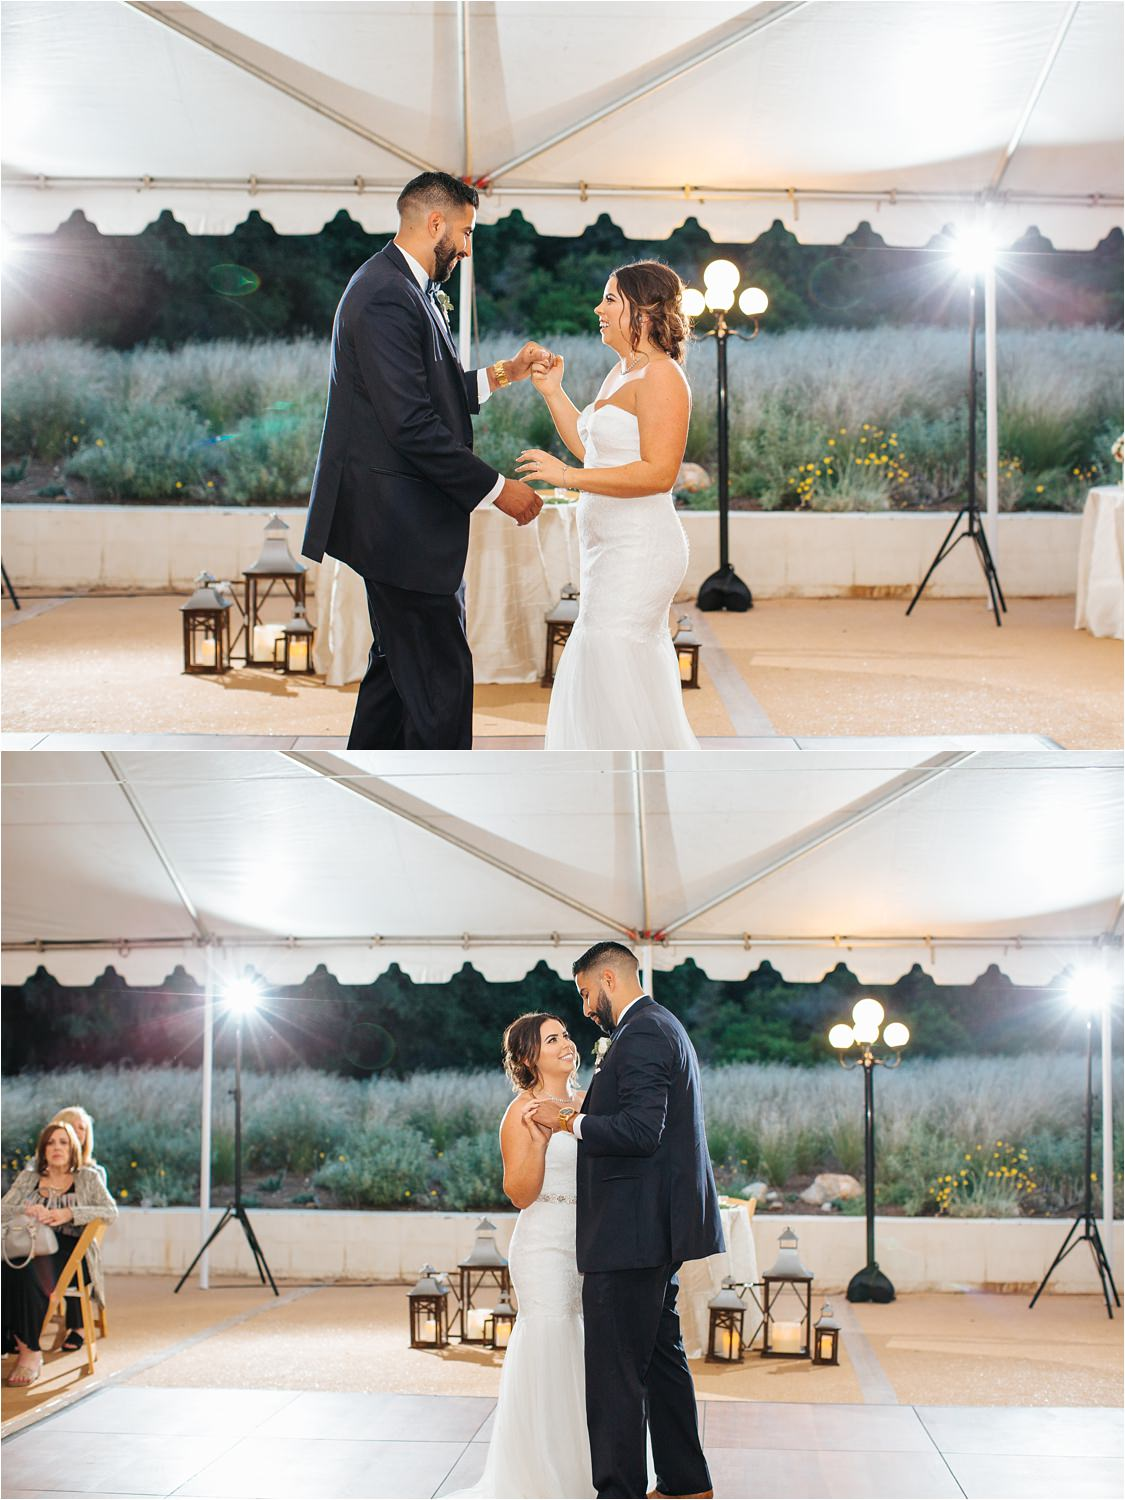 Bride and Groom's first dance during wedding reception - http://brittneyhannonphotography.com